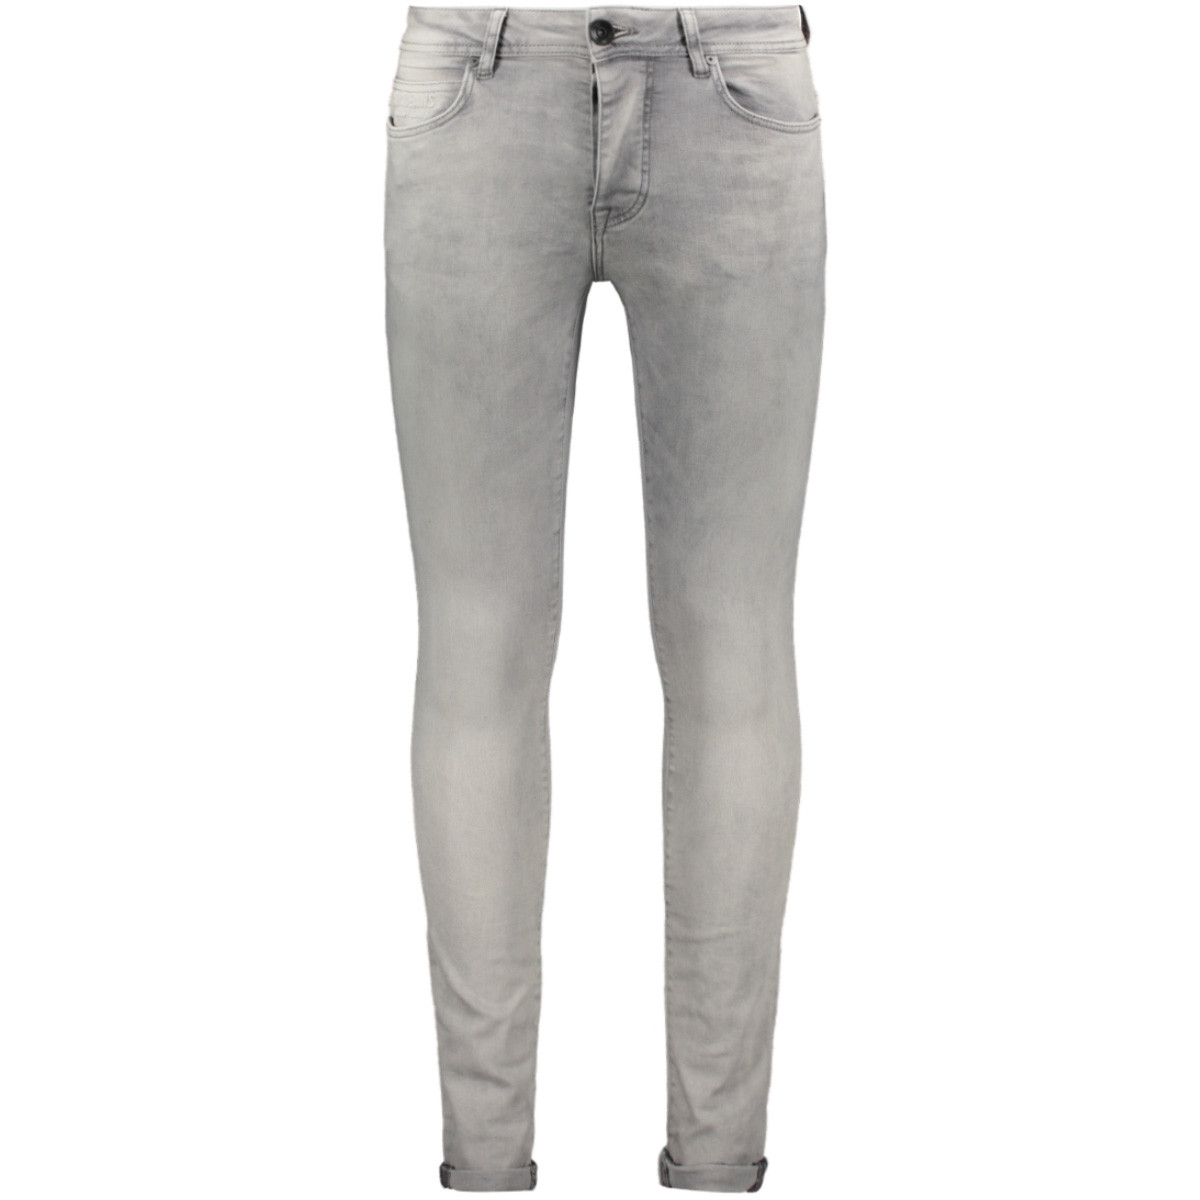 dust super skinny 75528 cars jeans 13 grey used